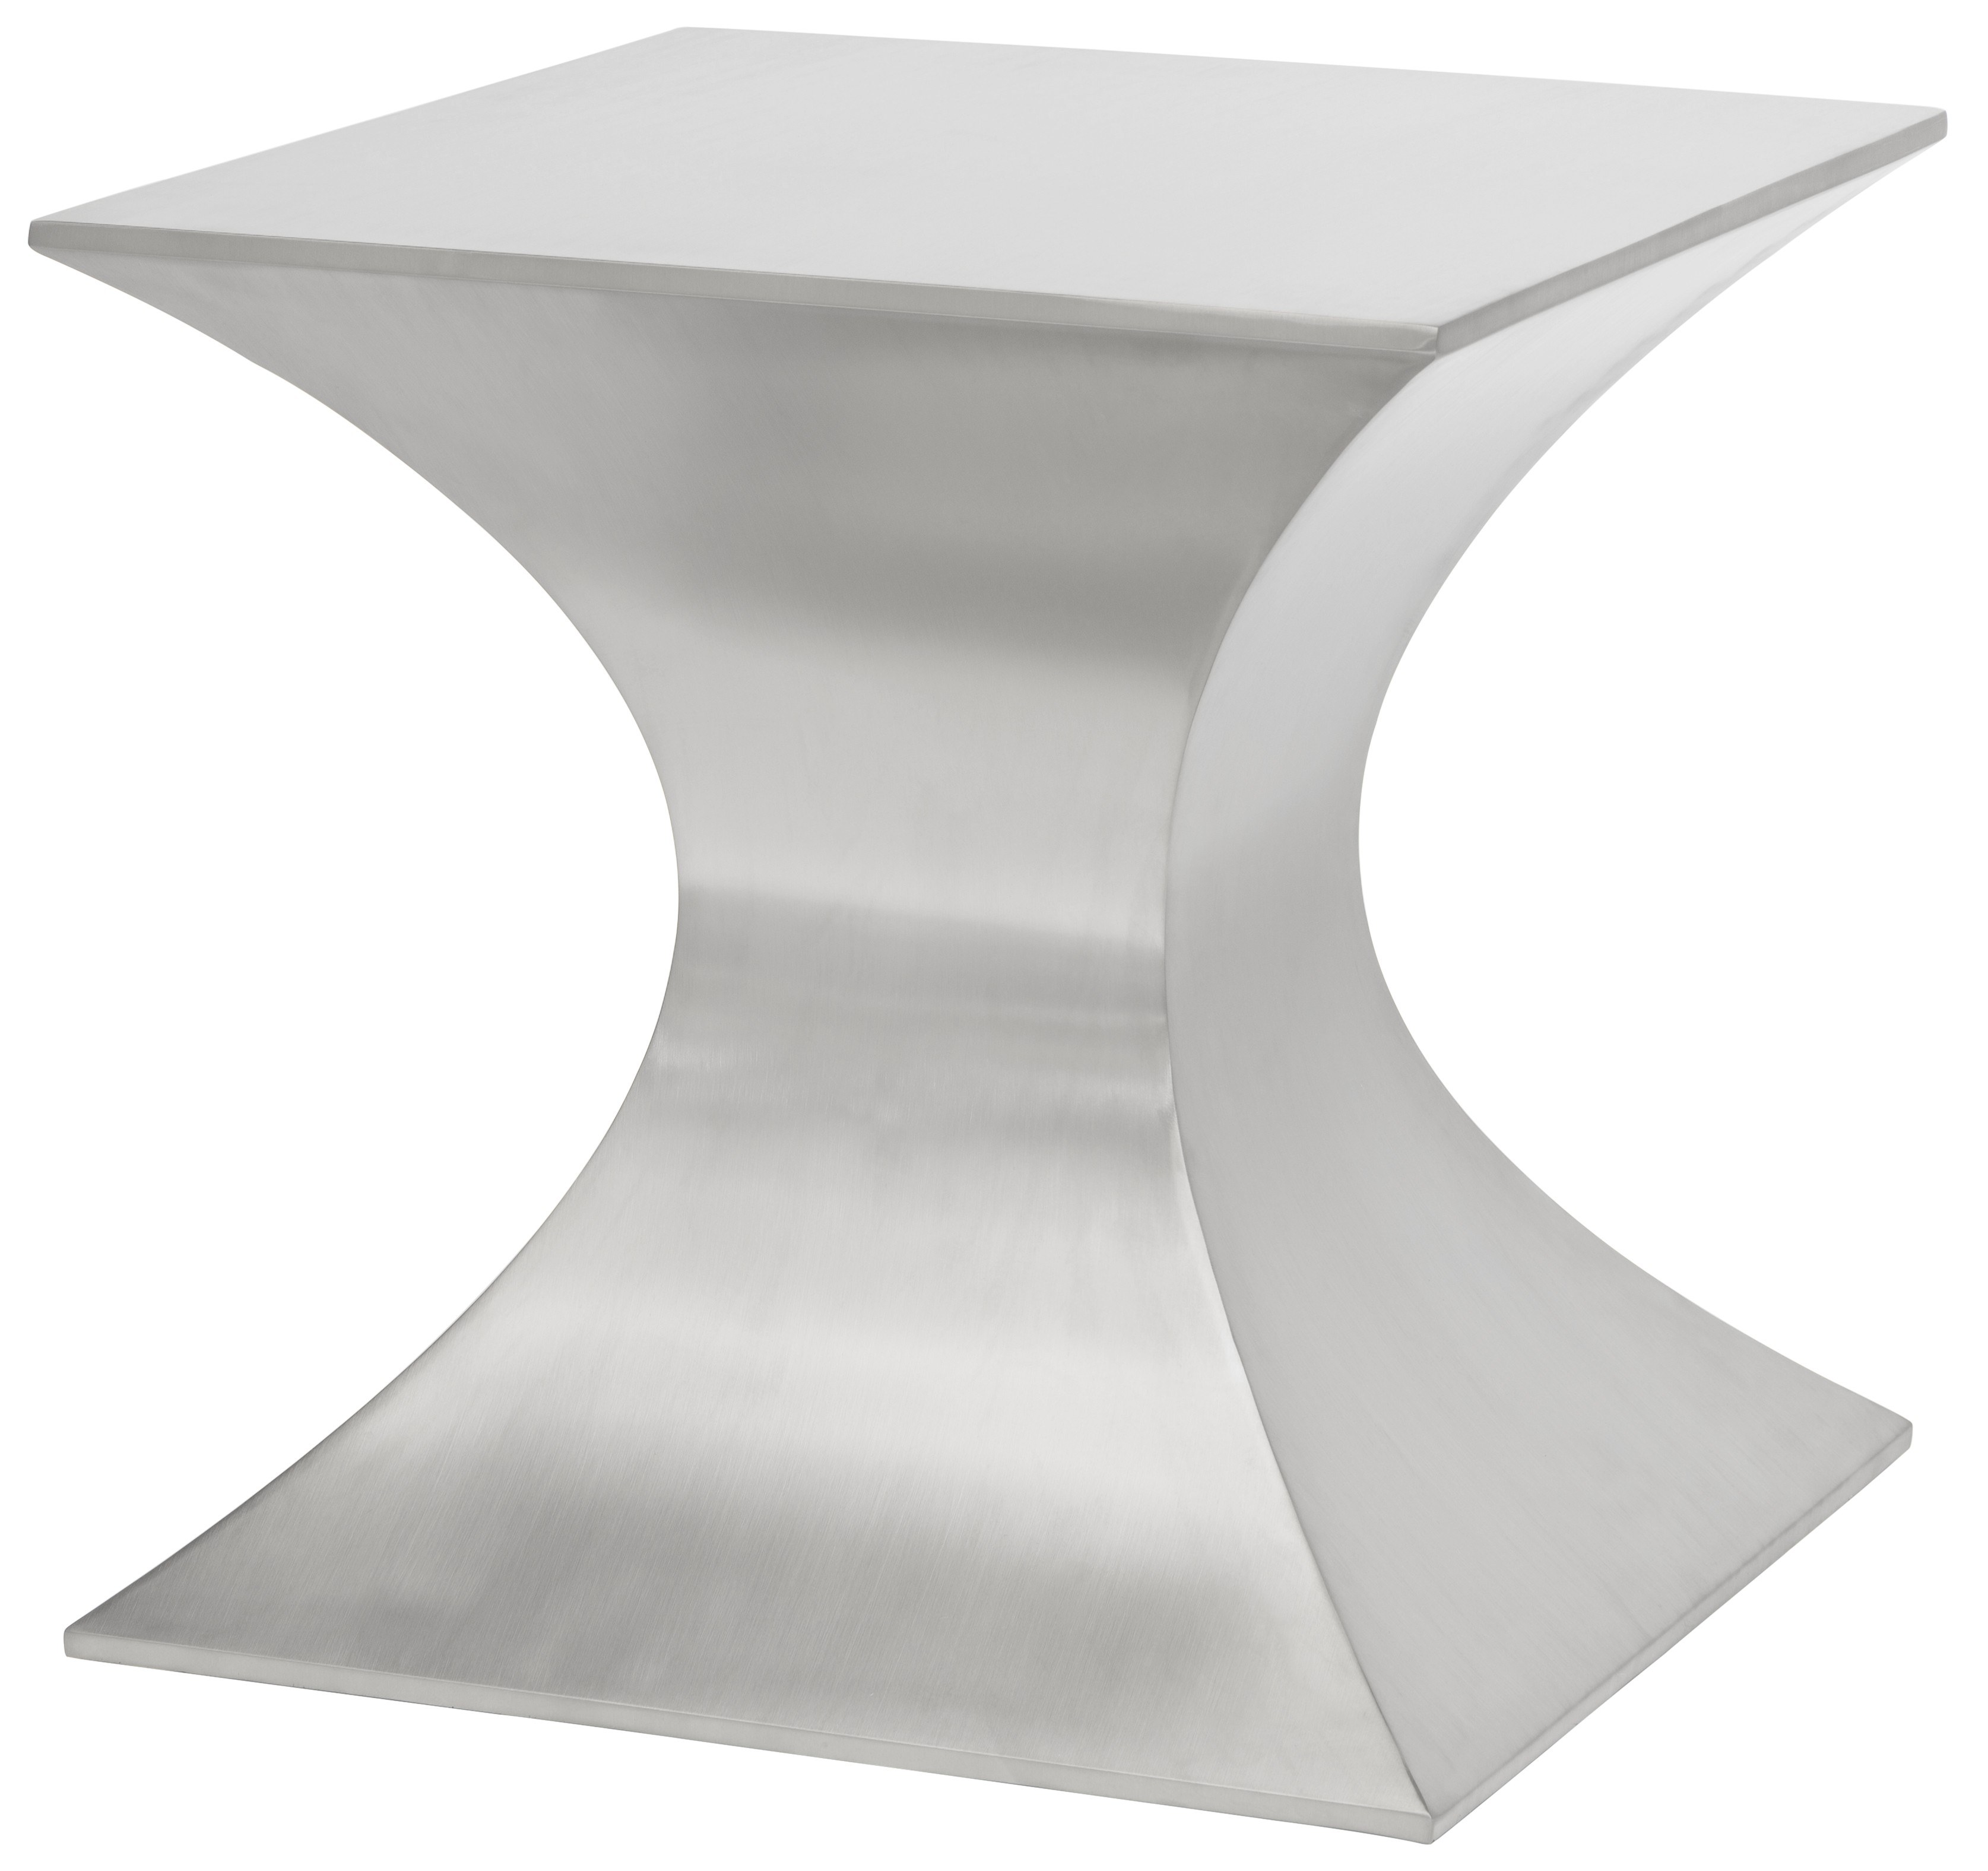 praetorian side table accent coffee tables living cado modern furniture contemporary silver gray more views wood patio oriental ceramic lamps target small kitchen urban chic